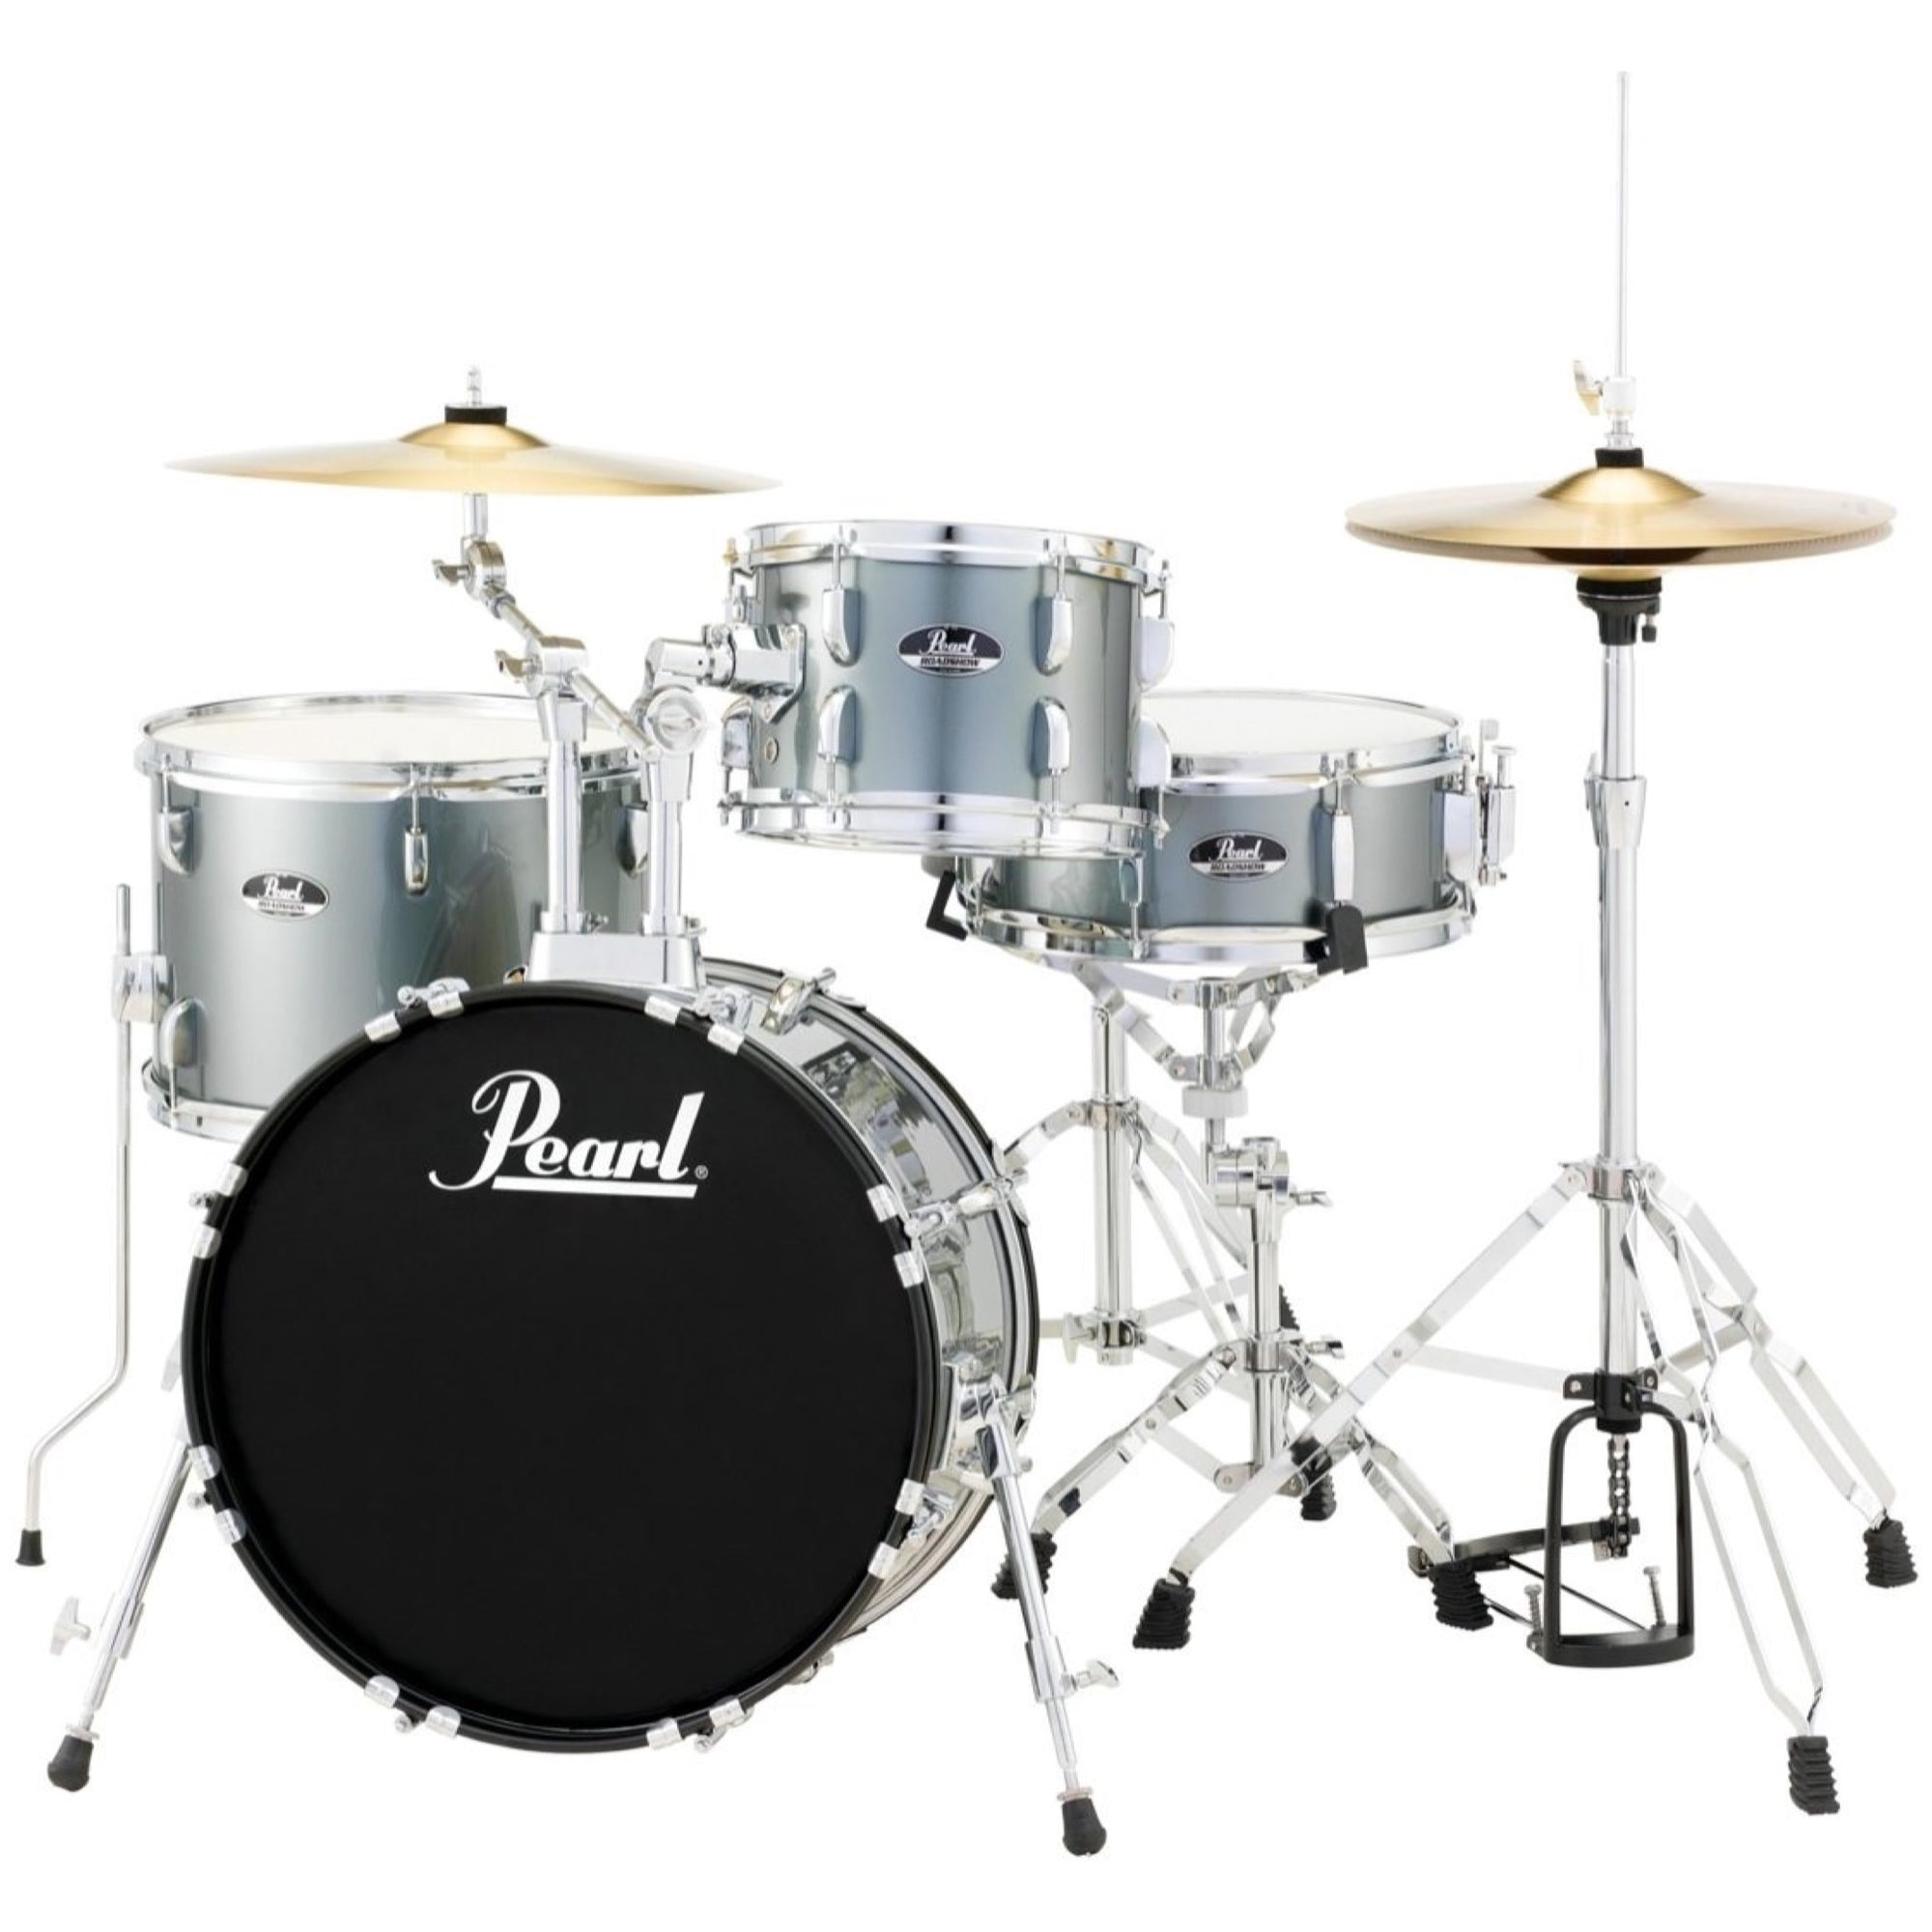 Pearl RS584C Roadshow Complete Bop Drum Kit, 4-Piece, Charcoal Metal